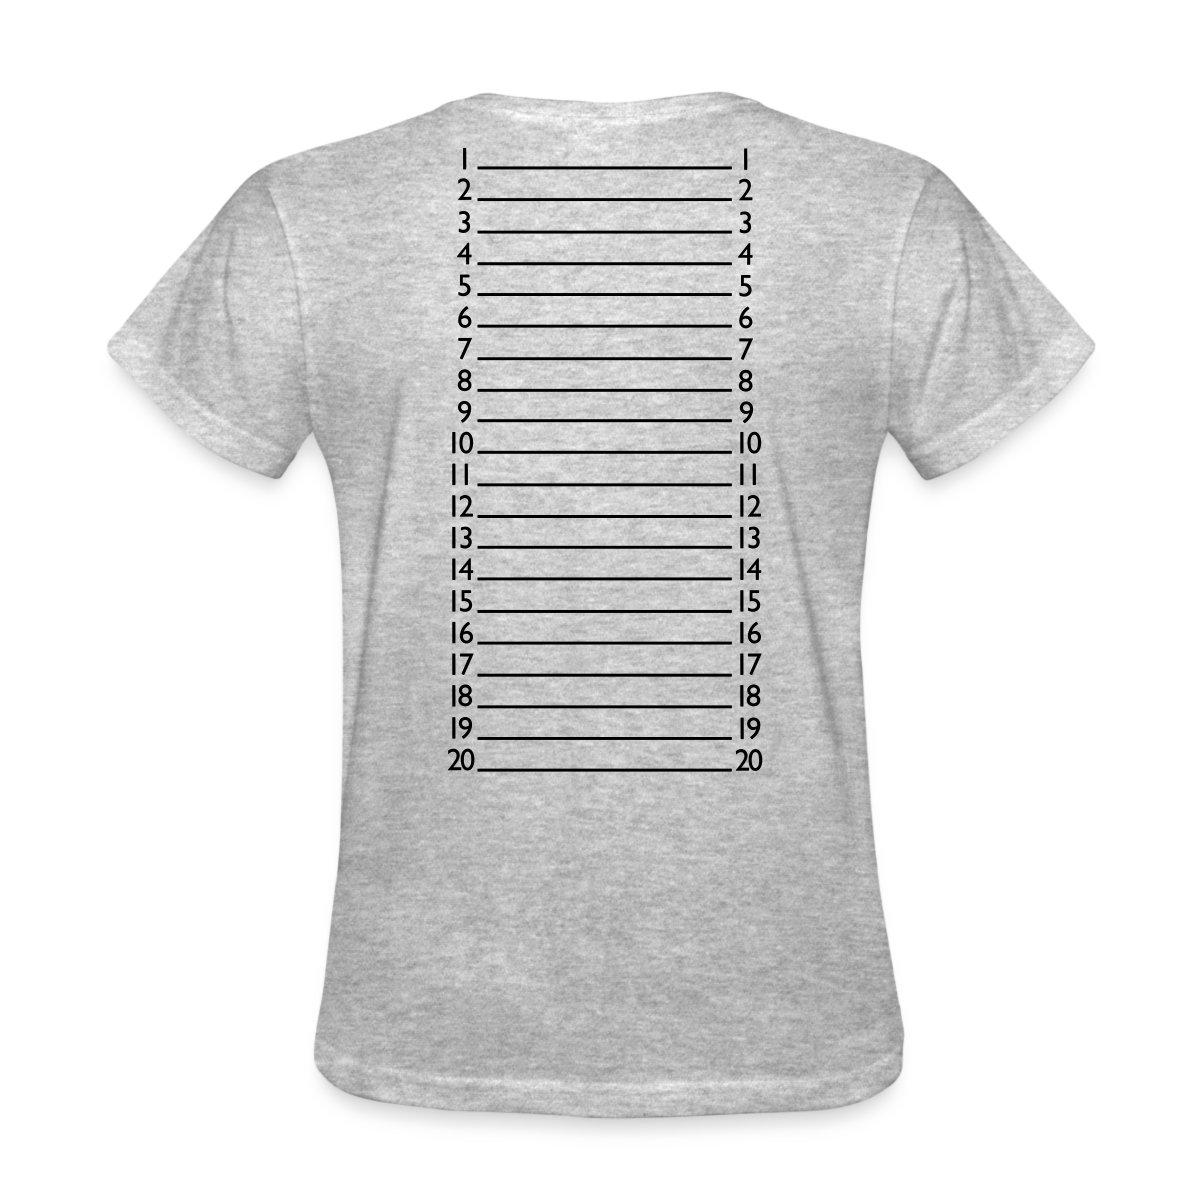 Hair Length Check Marker Women's T-Shirt by Spreadshirt ...